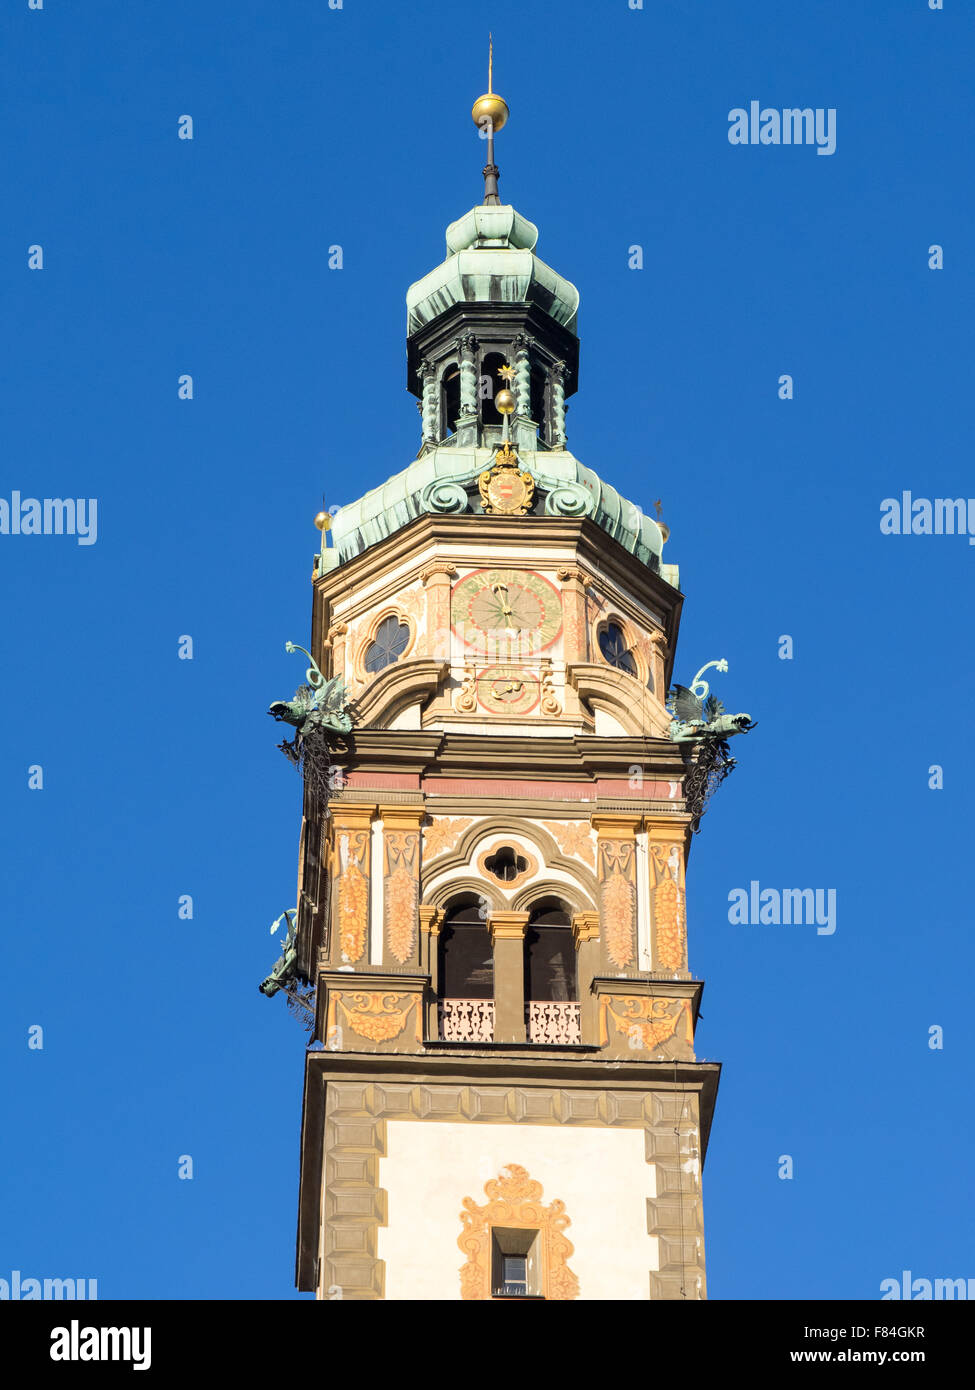 Tower bell of Hearth of Jesus church of Hall in Tirol, near Innsbruck, with blue sky, vertical frame. - Stock Image